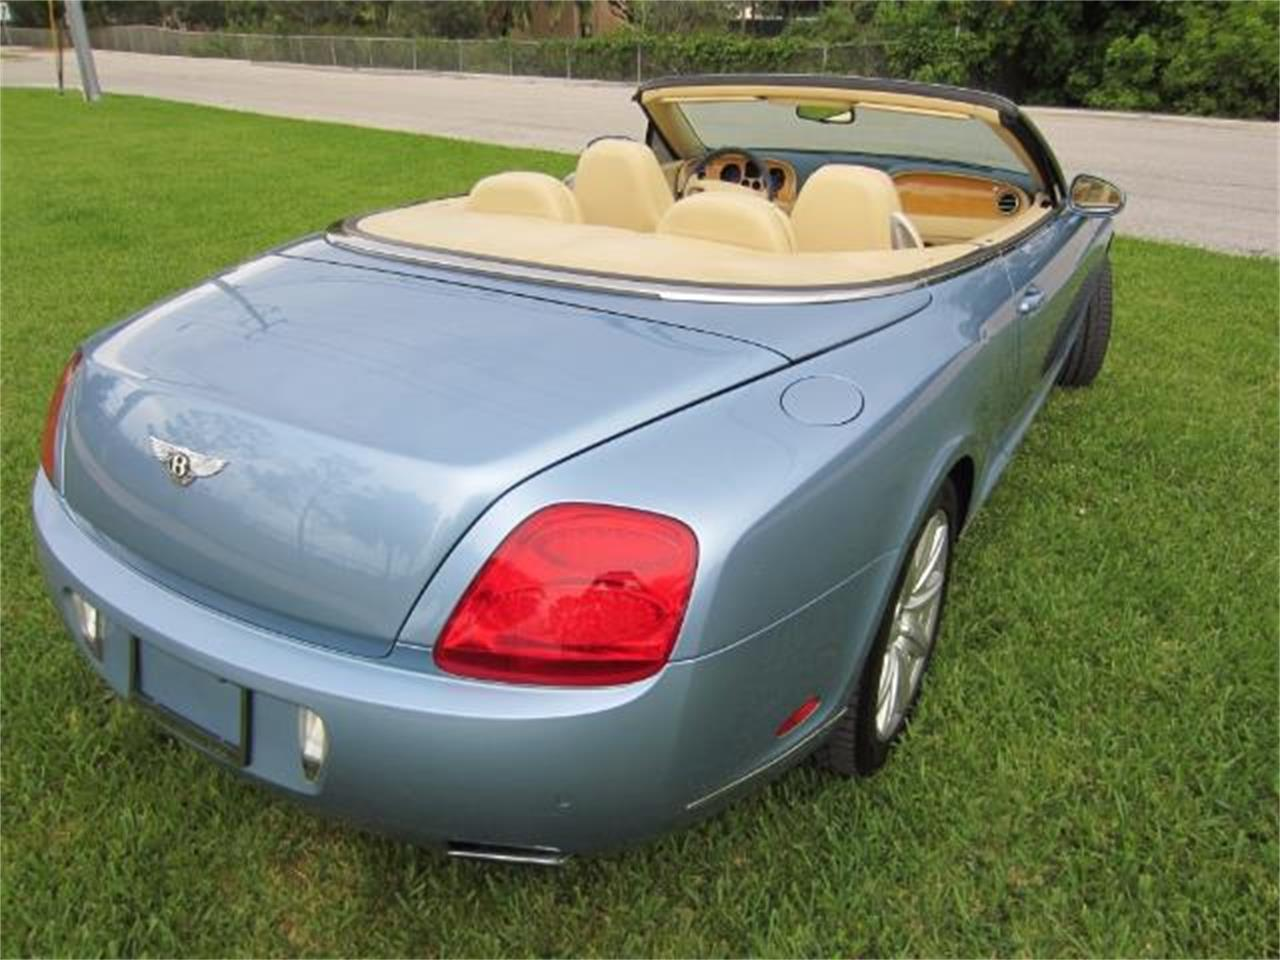 Large Picture of '08 Bentley Continental GTC located in Delray Beach Florida Auction Vehicle Offered by Autosport Group - LATV